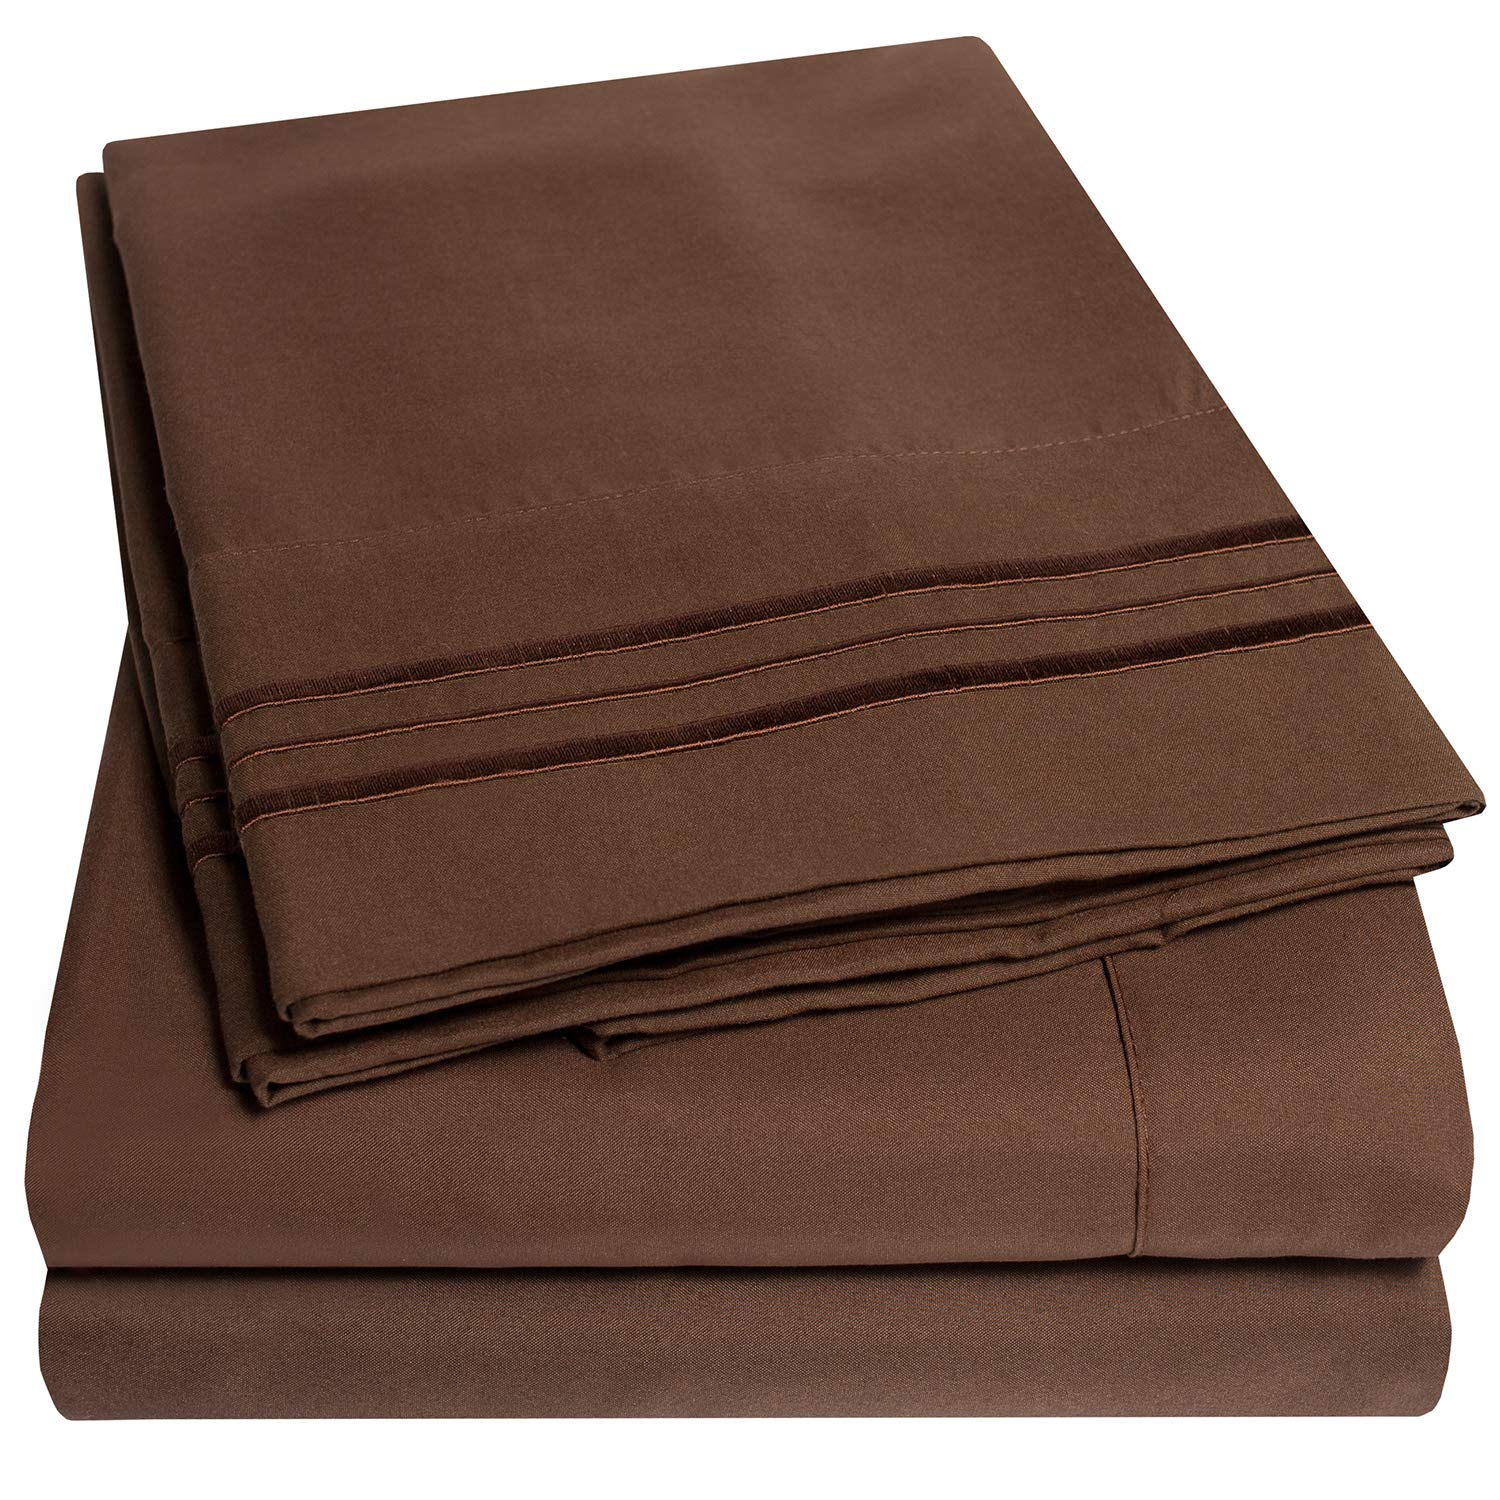 1500 Supreme Collection Extra Soft Queen Sheets Set, Brown - Luxury Bed Sheets Set with Deep Pocket Wrinkle Free Hypoallergenic Bedding, Over 40 Colors, Queen Size, Brown